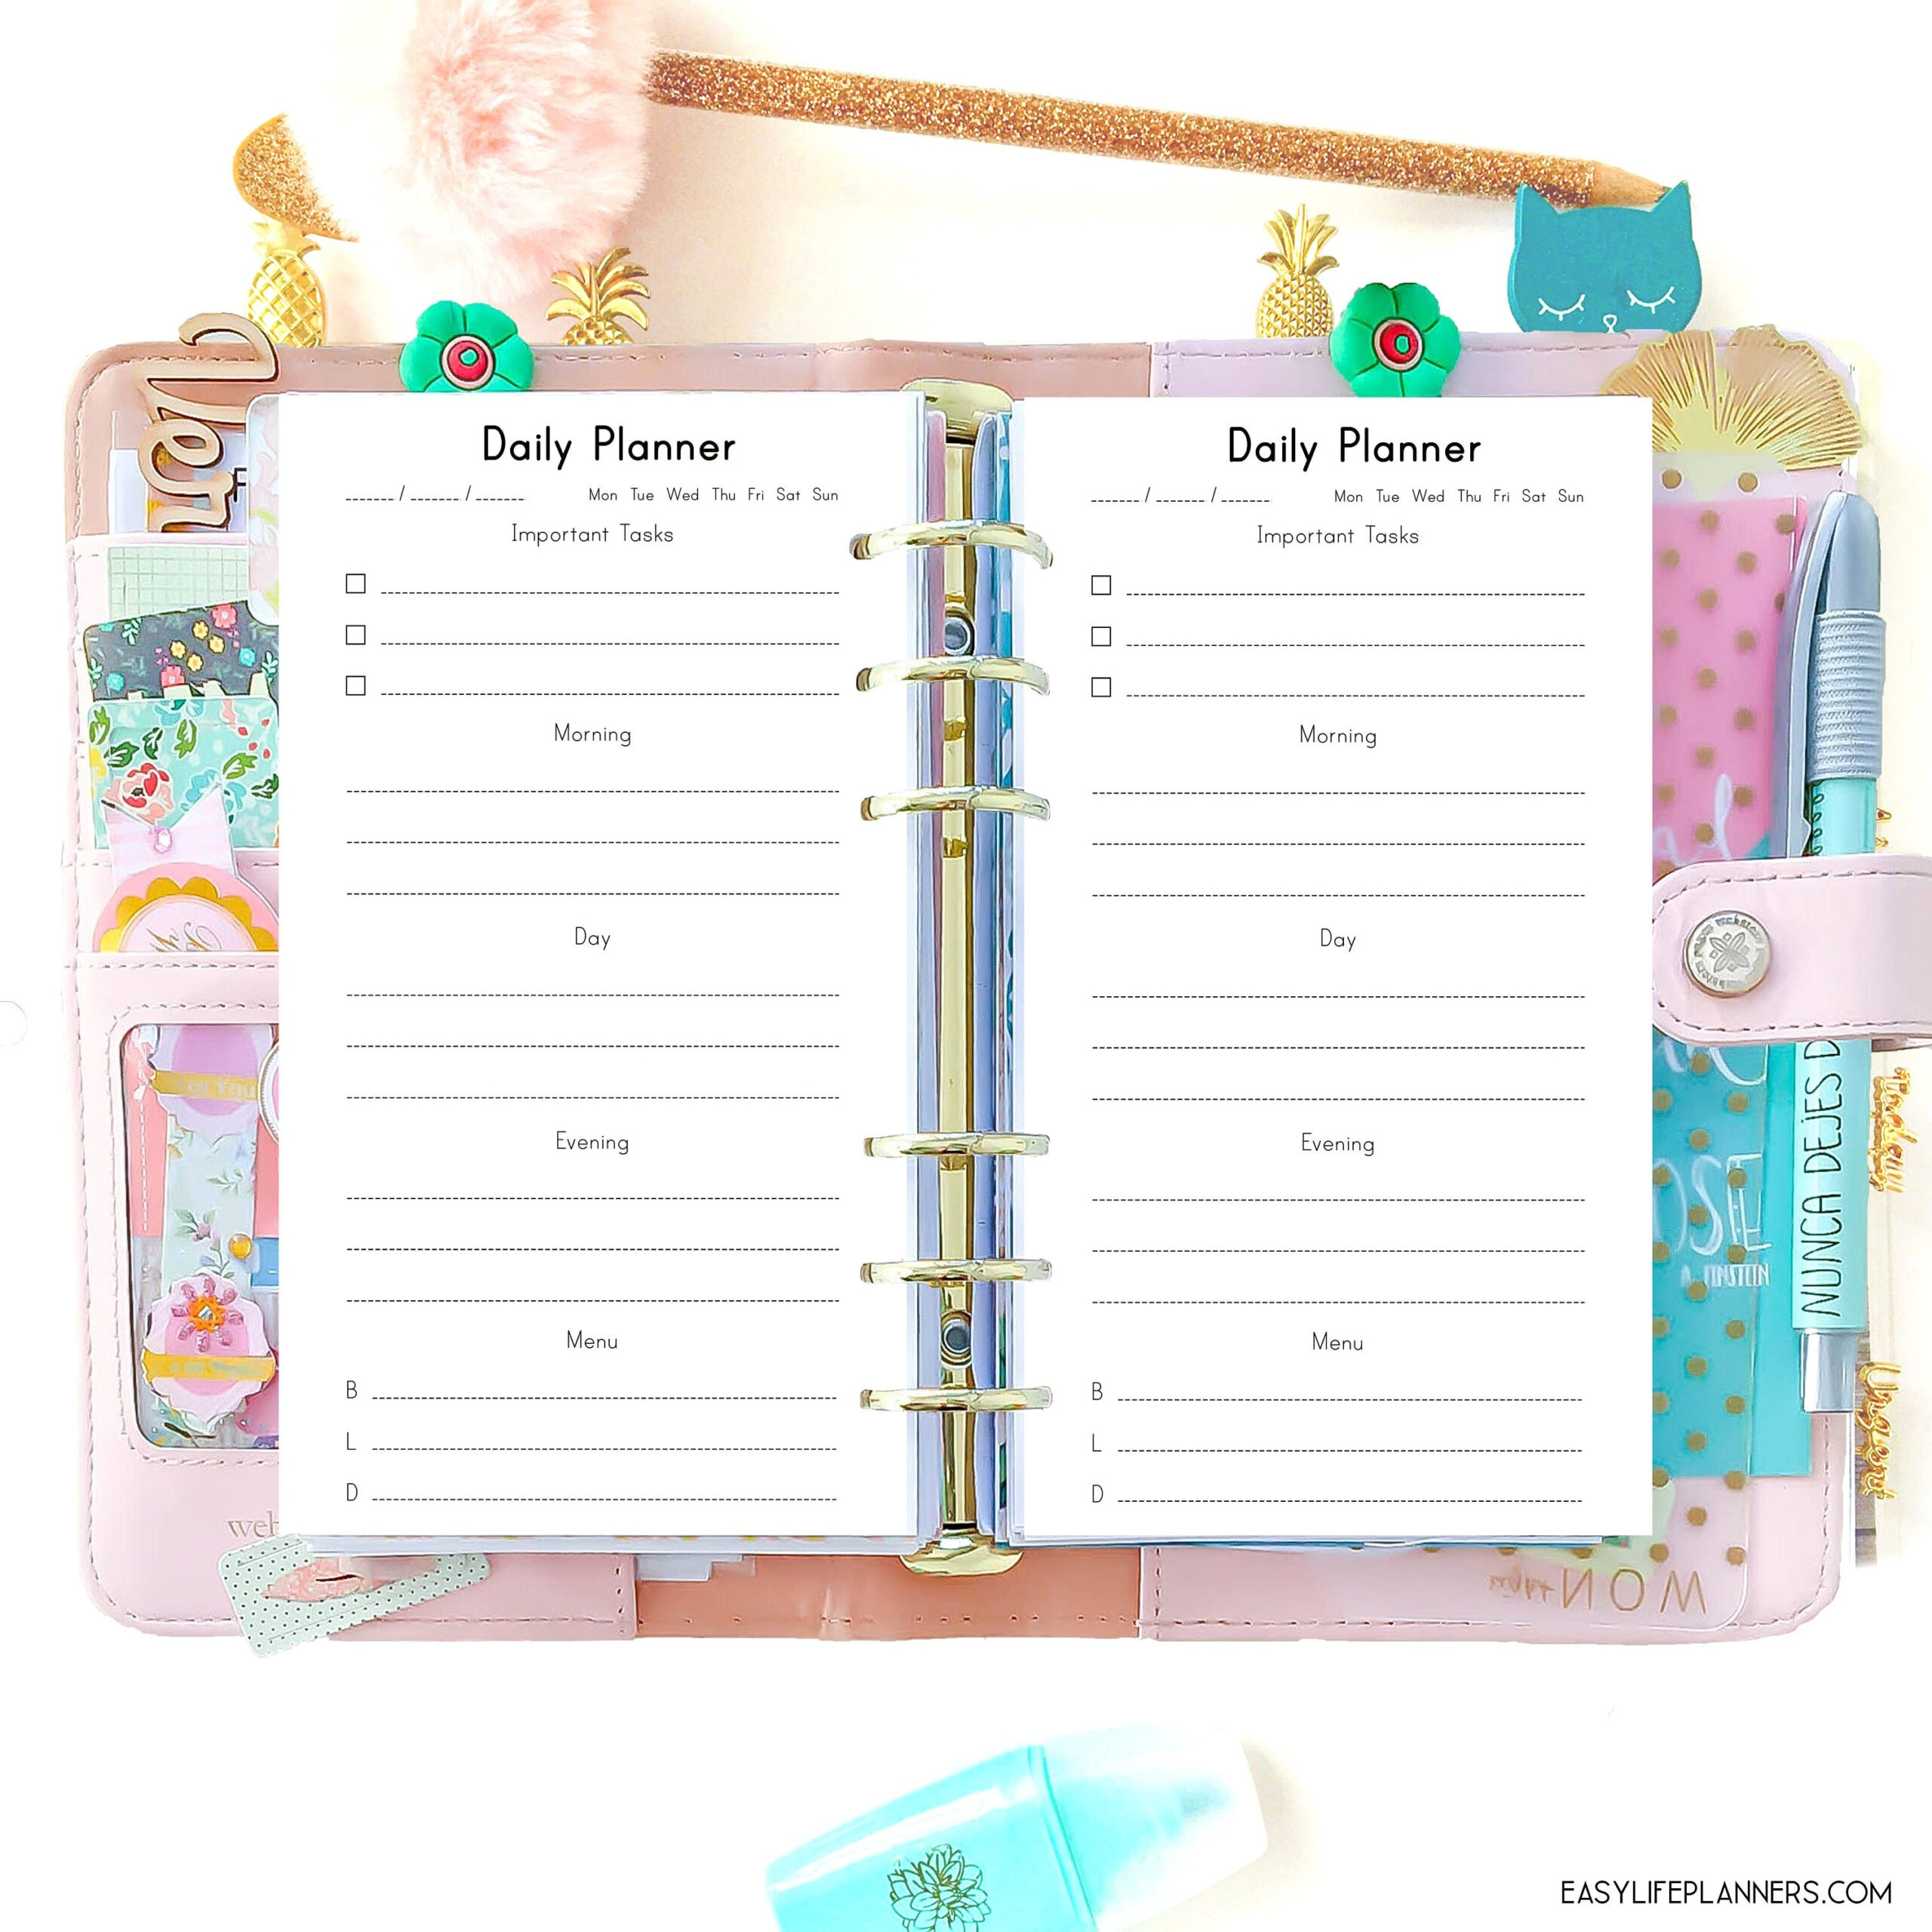 Daily Planner Pages Personal Size Planner Inserts with Planner Insert Printables Book Photo